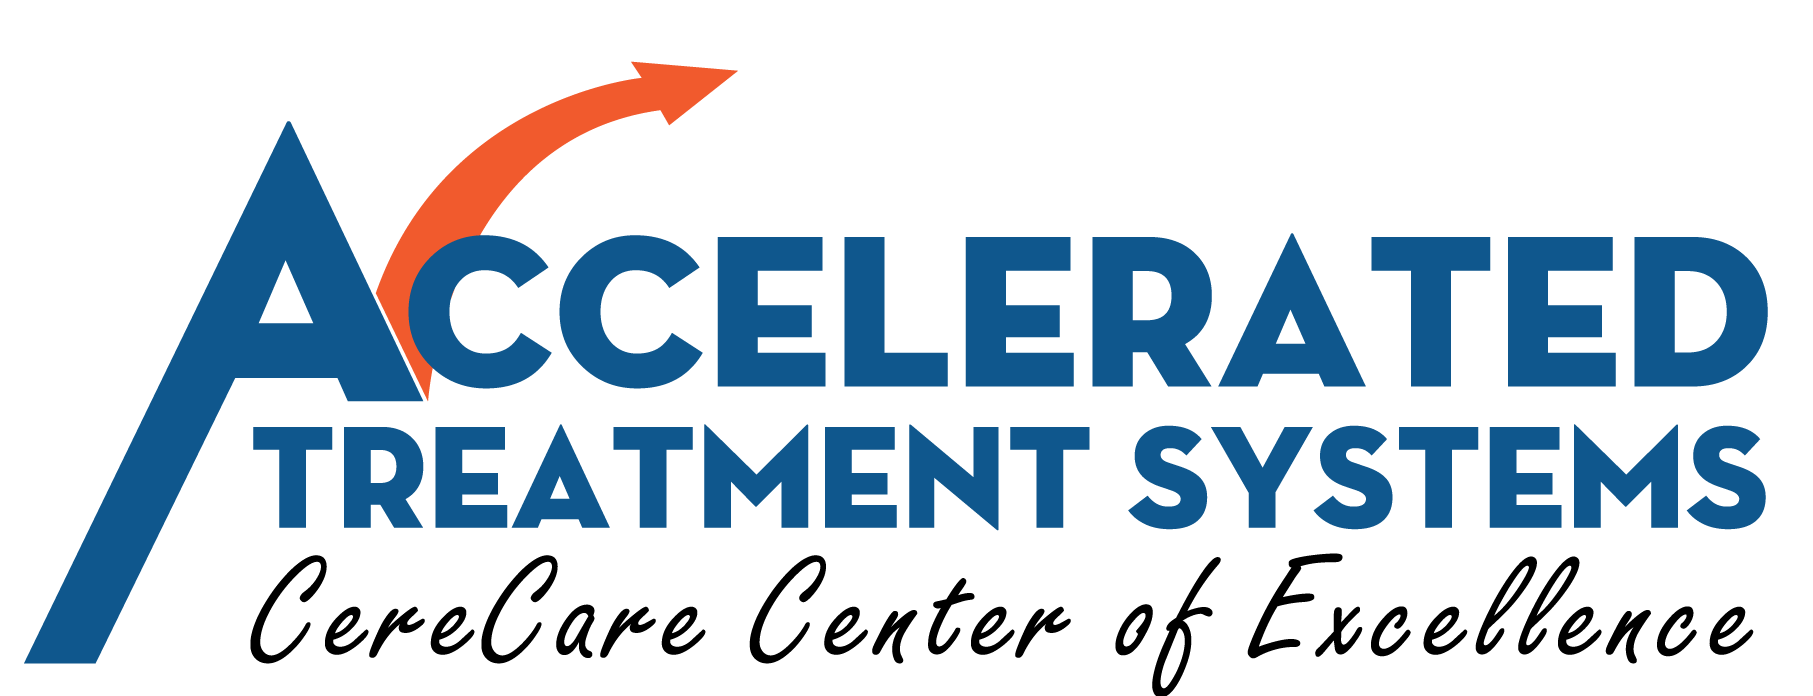 Accelerated Treatment Systems